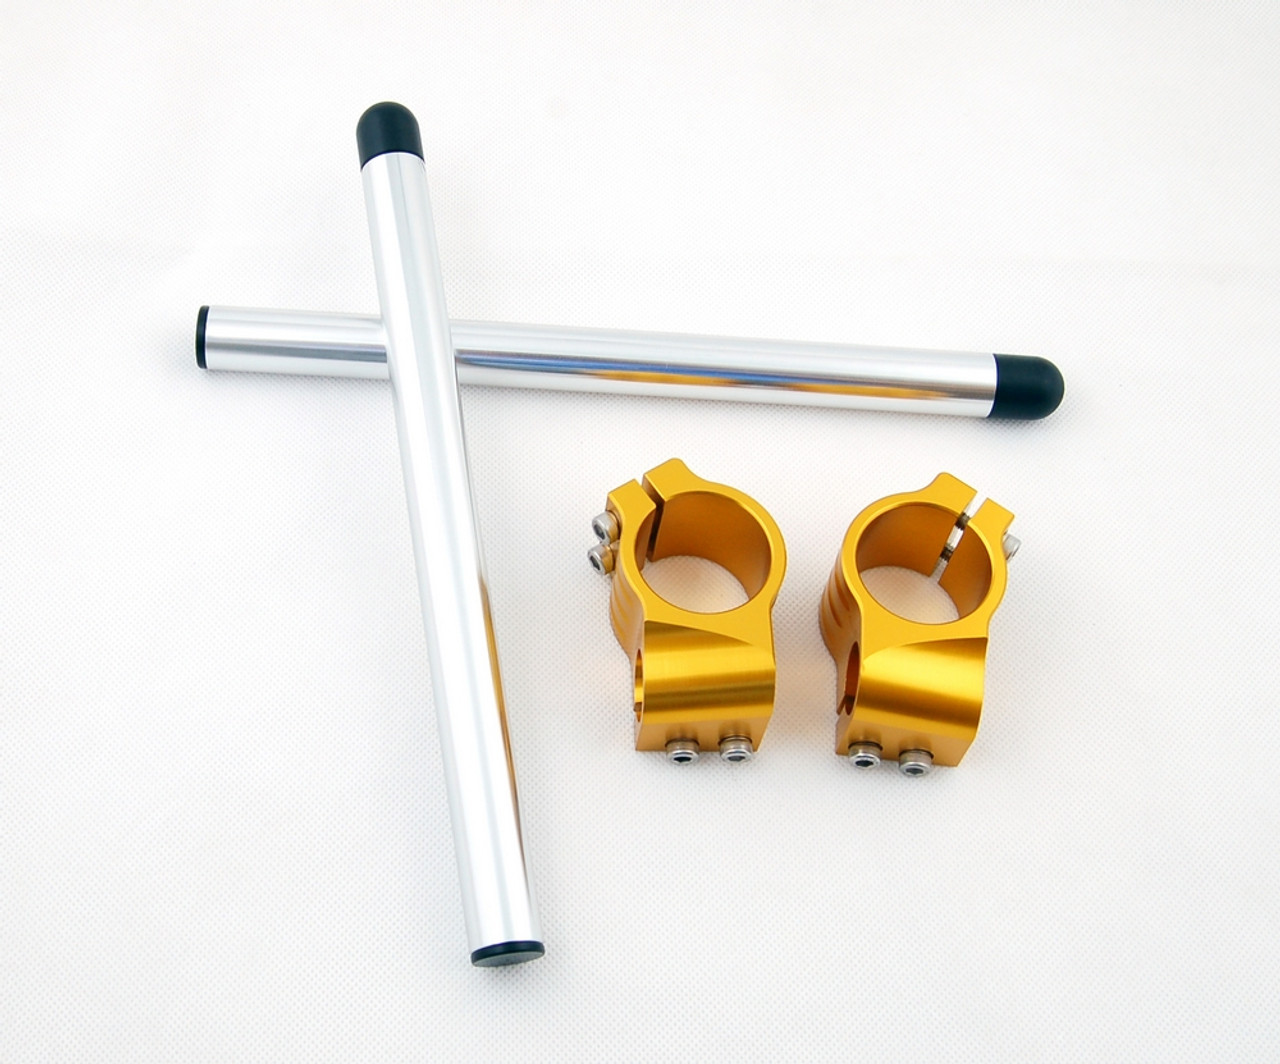 Clip-On 43MM Racer Handlebars Buell M2L Cyclone (2002), M2 Cyclone  (1997-2002), Gold